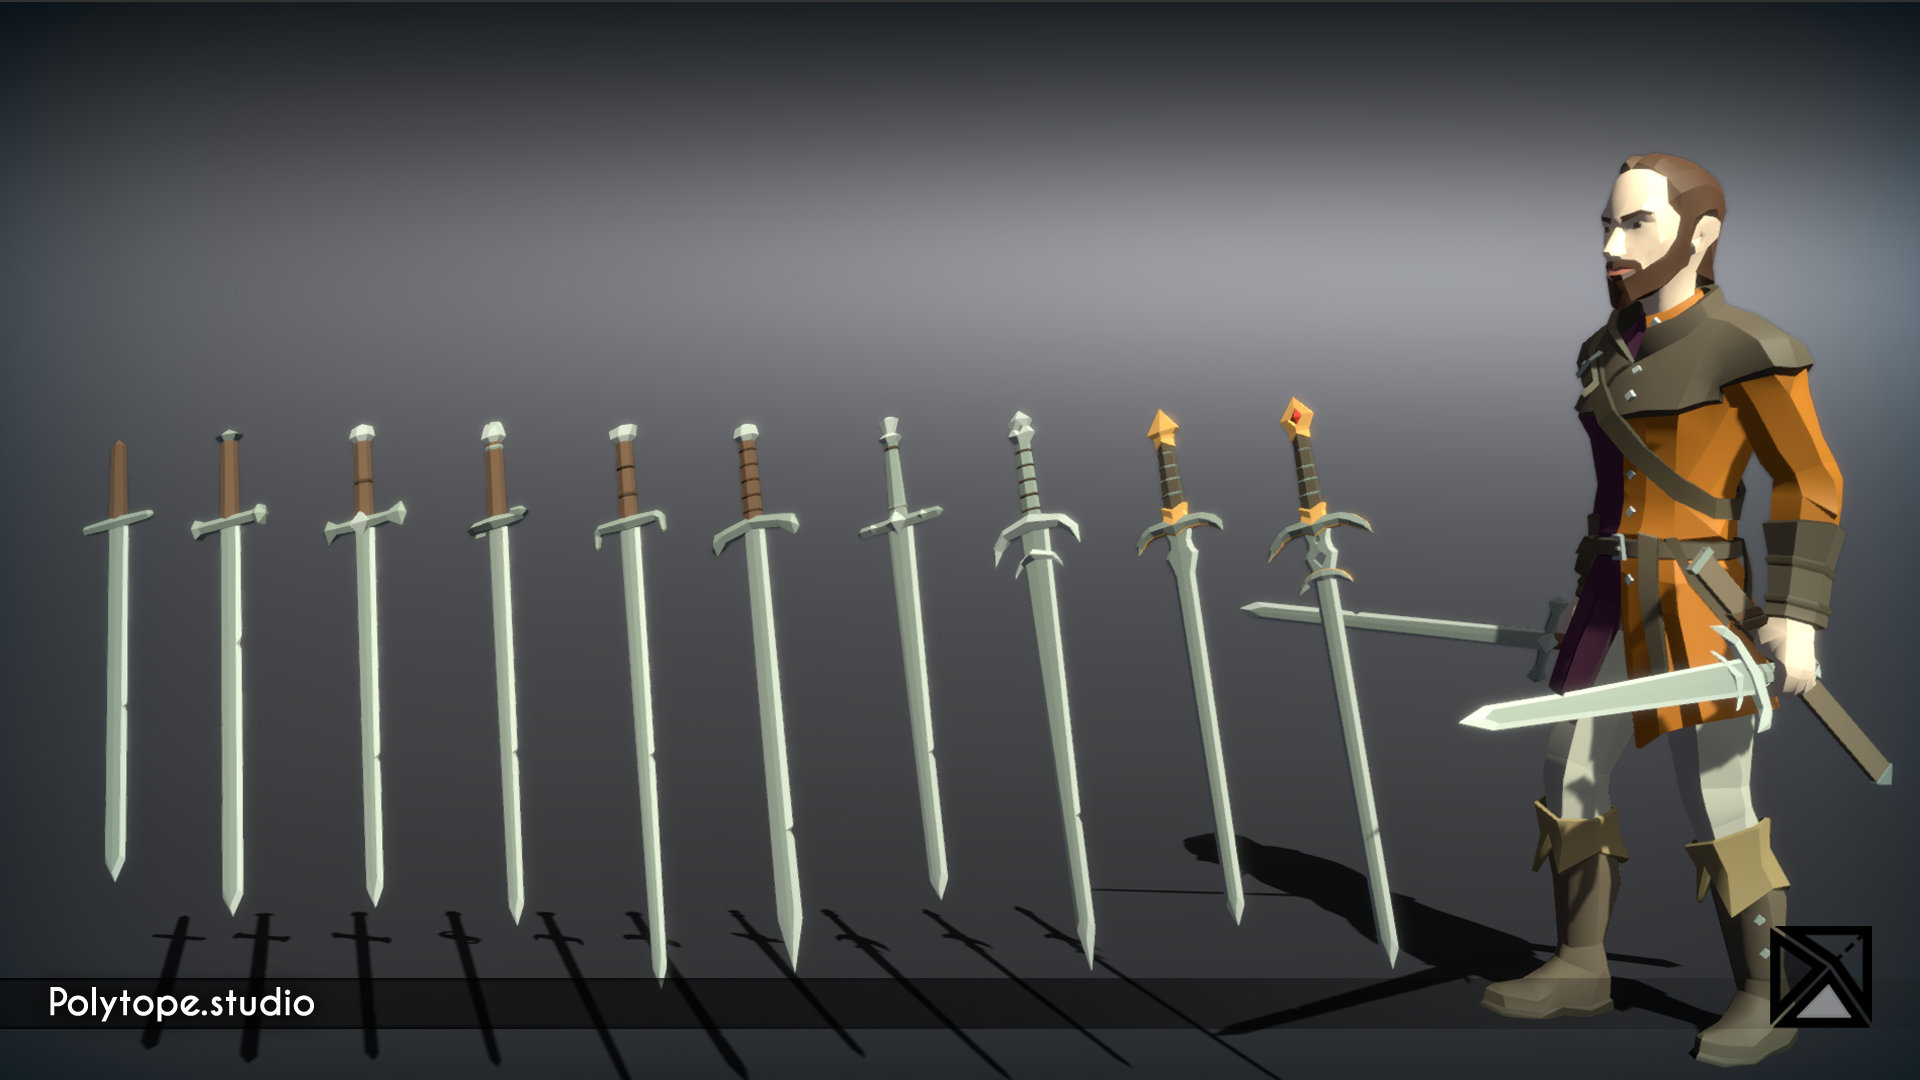 PT_Medieval_Lowpoly_Weapons_Sword.png